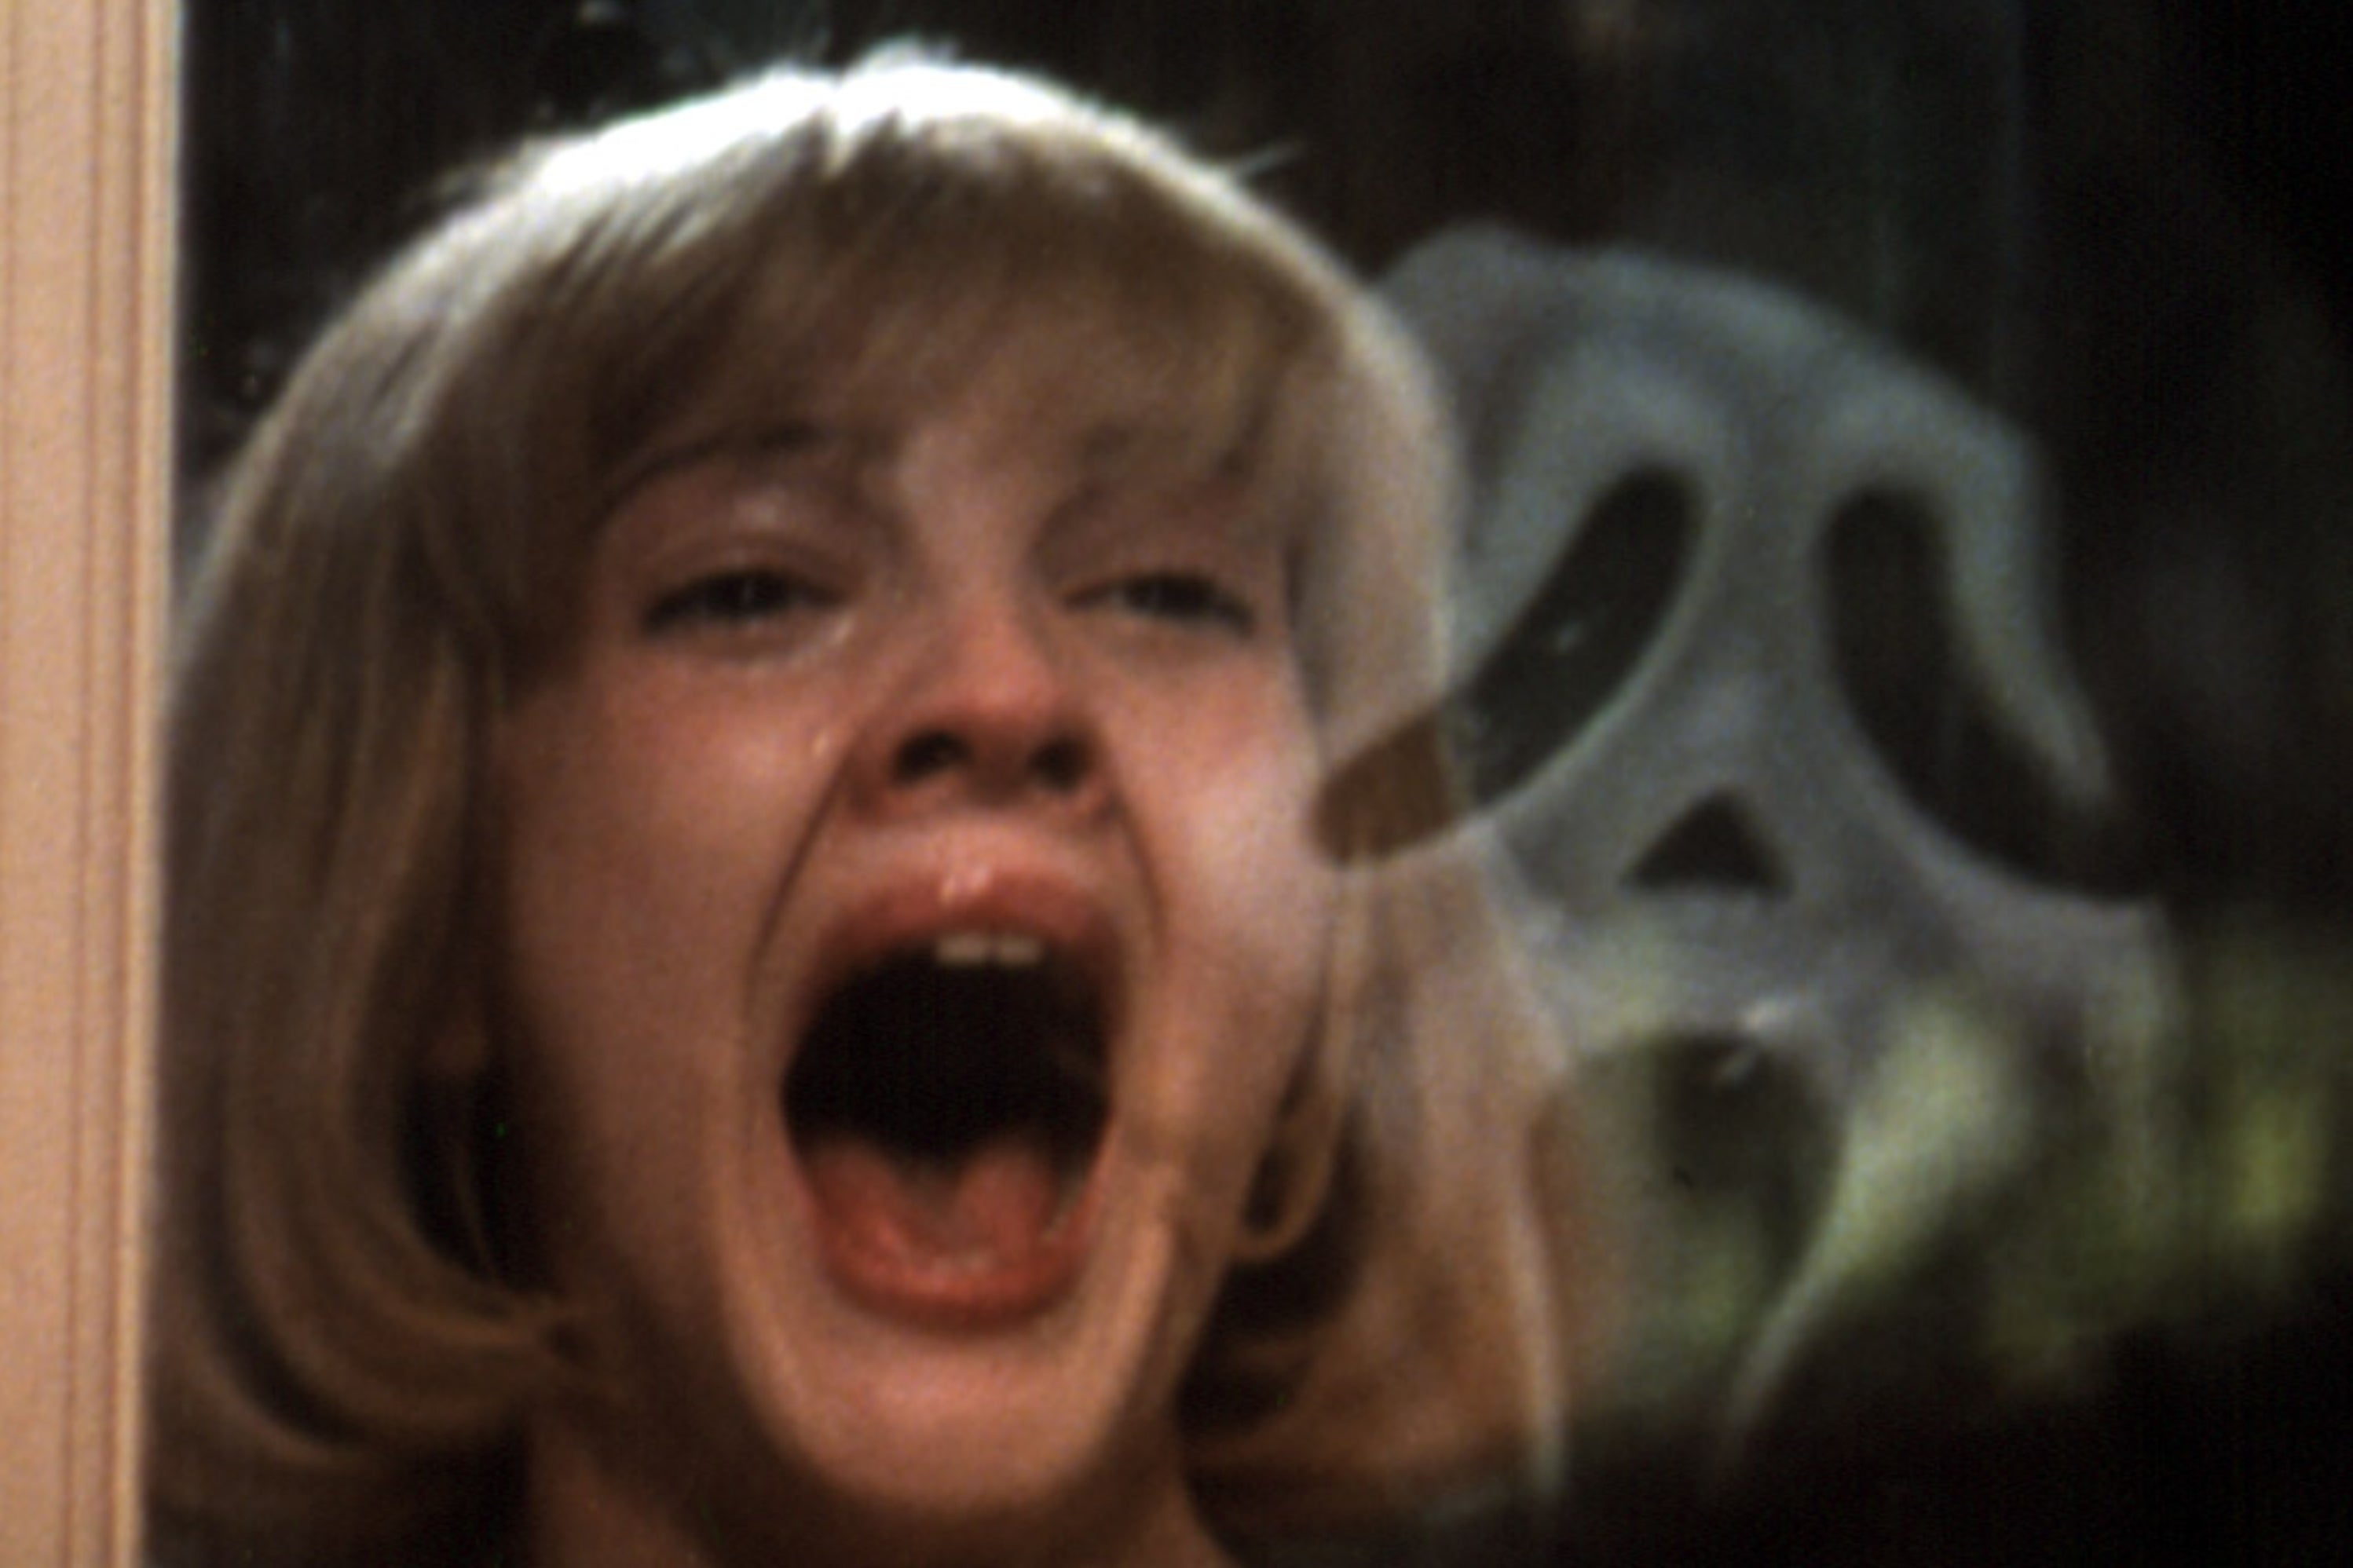 Not To Freak You Out, But We Know Your Age Just Based On The Horror Movies You Pick